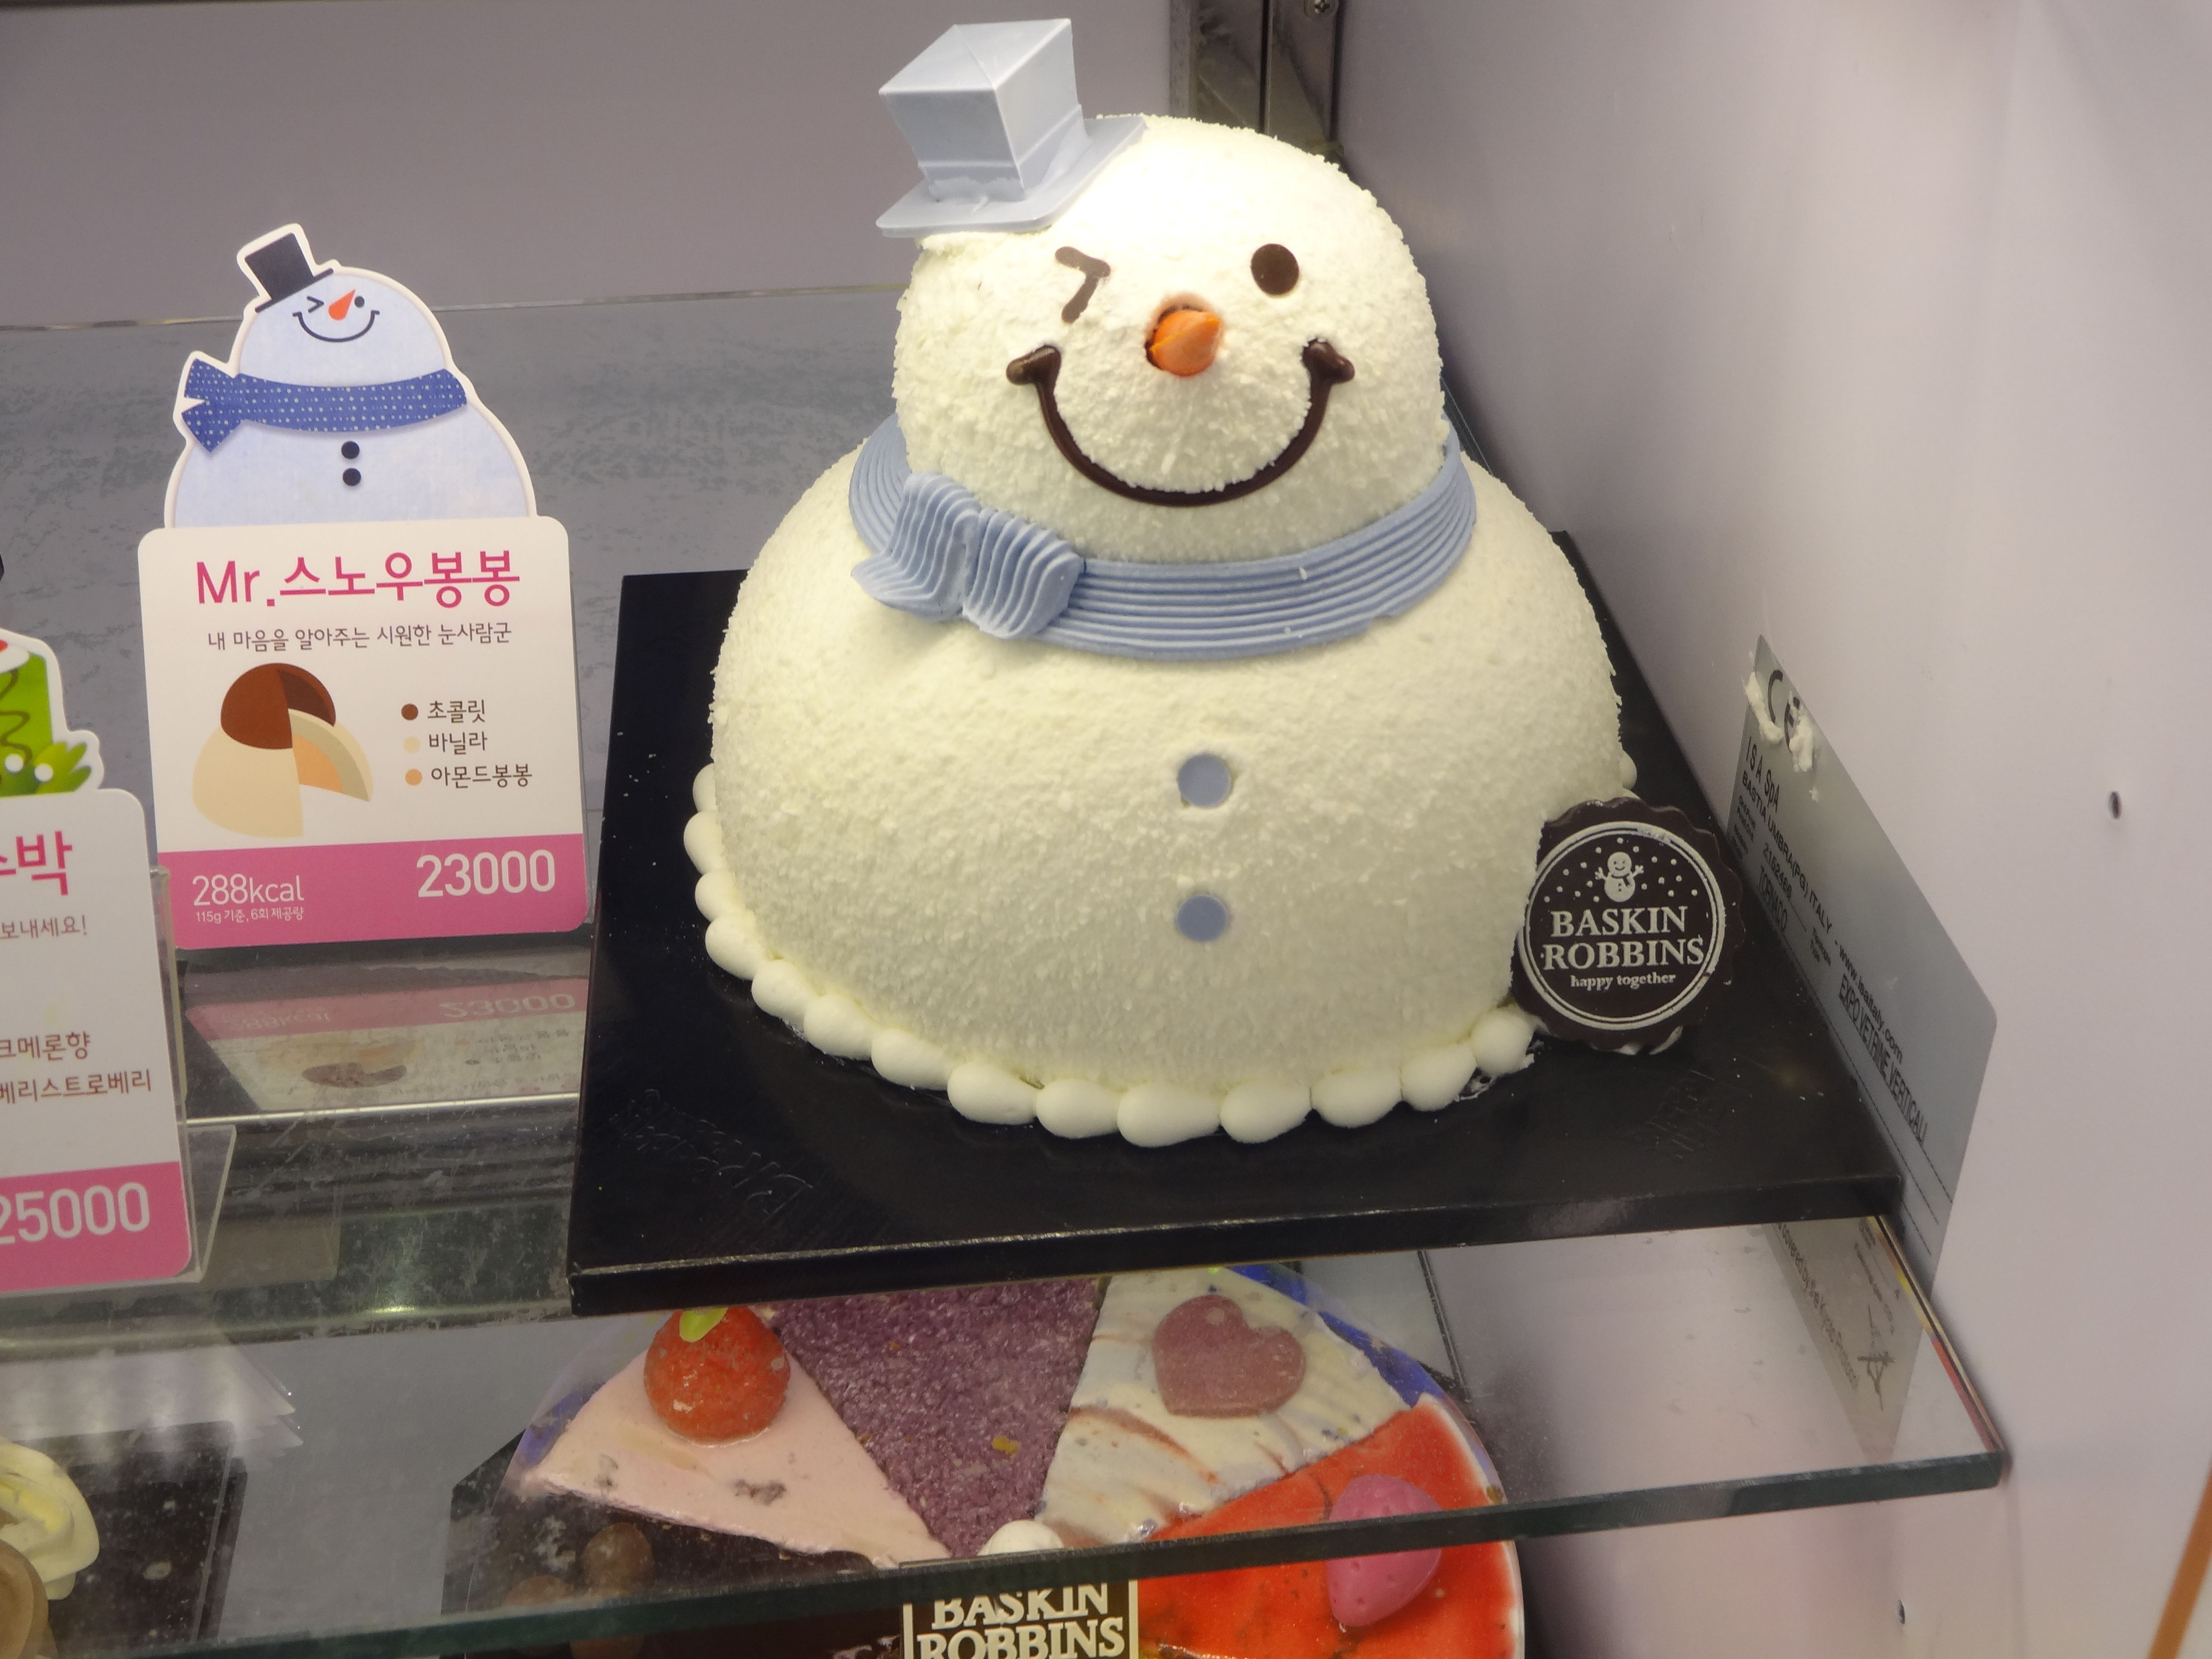 cute snowman icecream cake! perfect for those who have christmas in the boiling hot summer time! *uhhum cough cough points directly at myself and cries while singing white christmas*